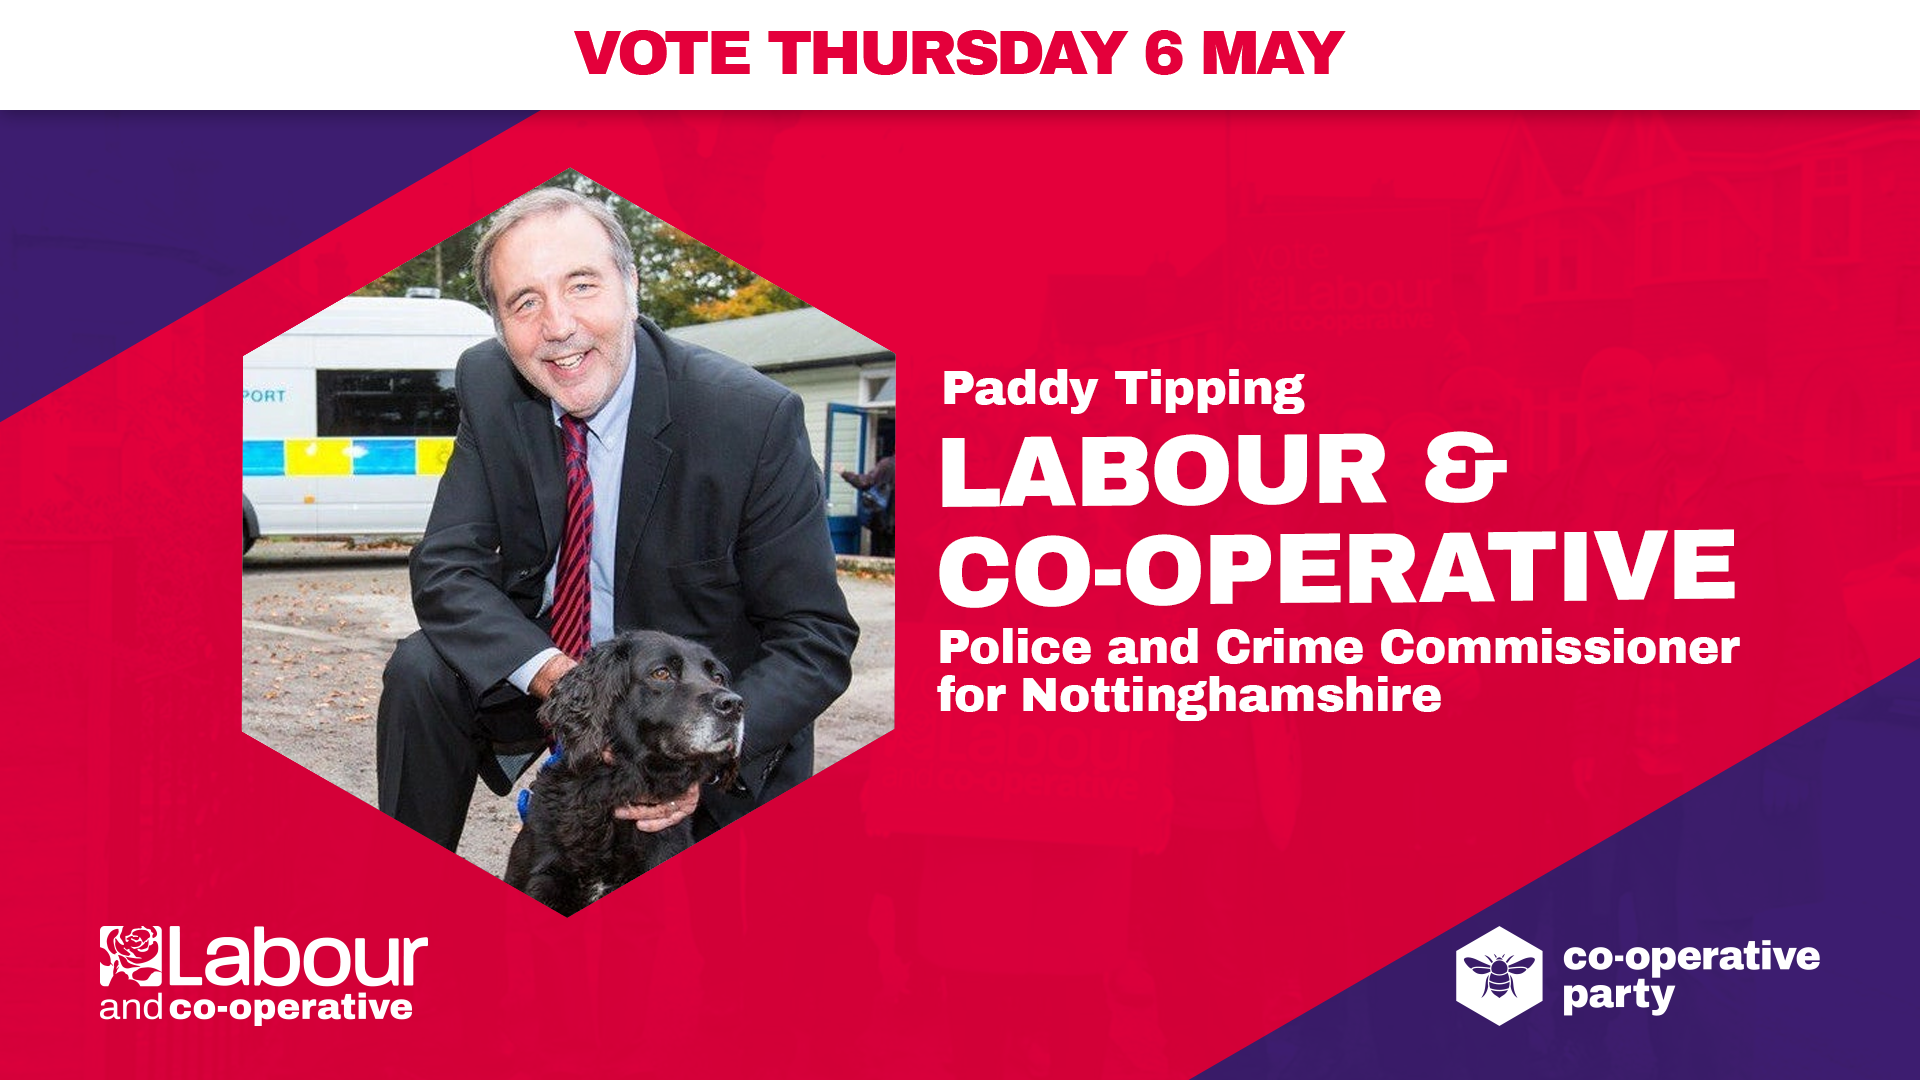 Paddy Tipping